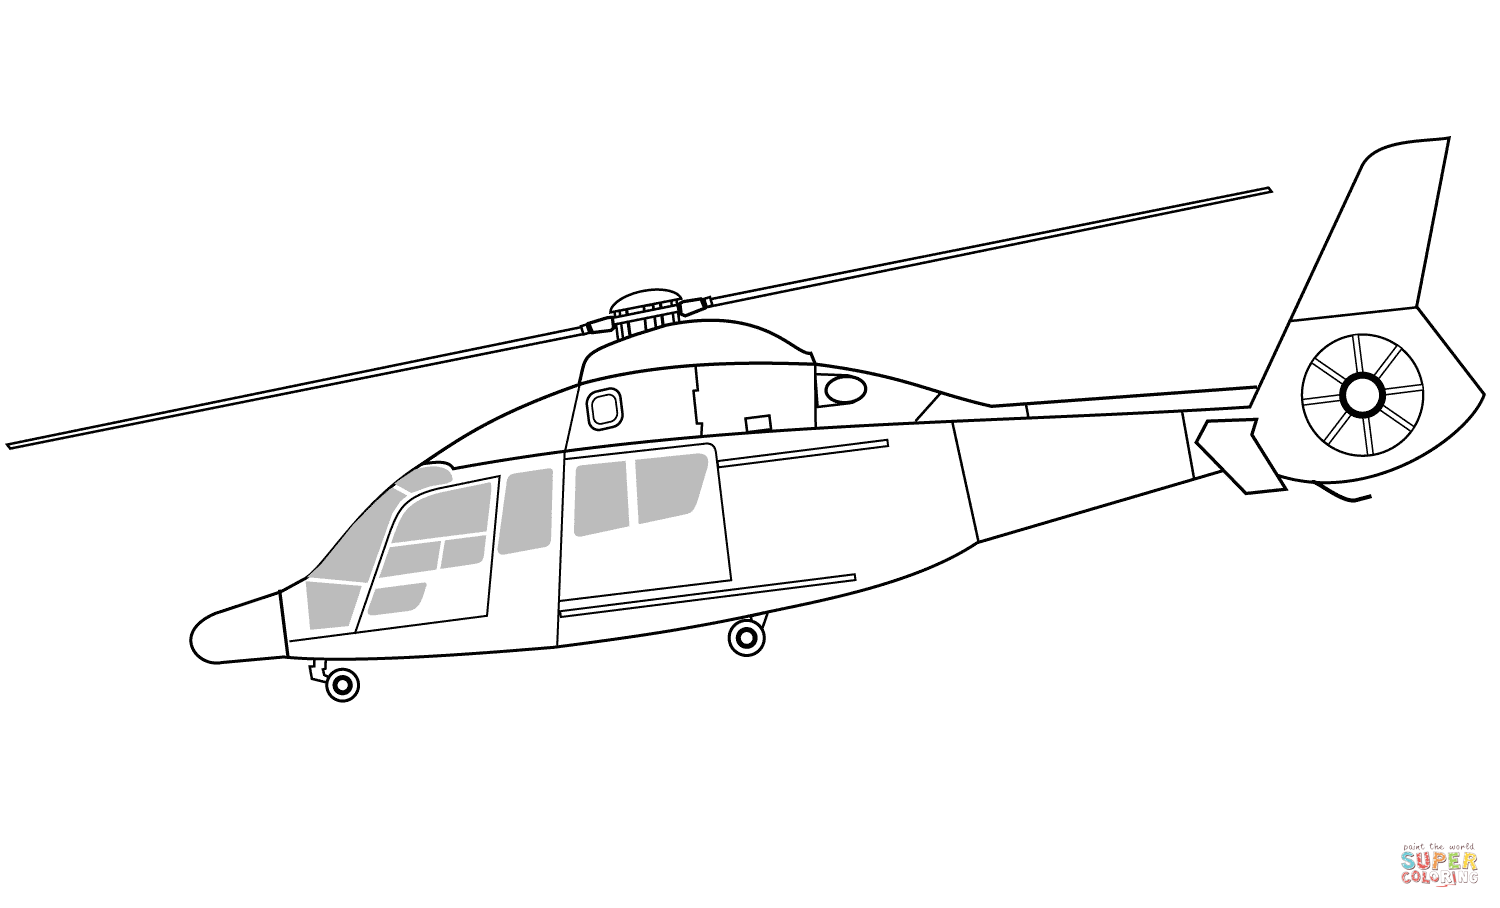 Eurocopter Ec155 Rescue Helicopter Coloring Page